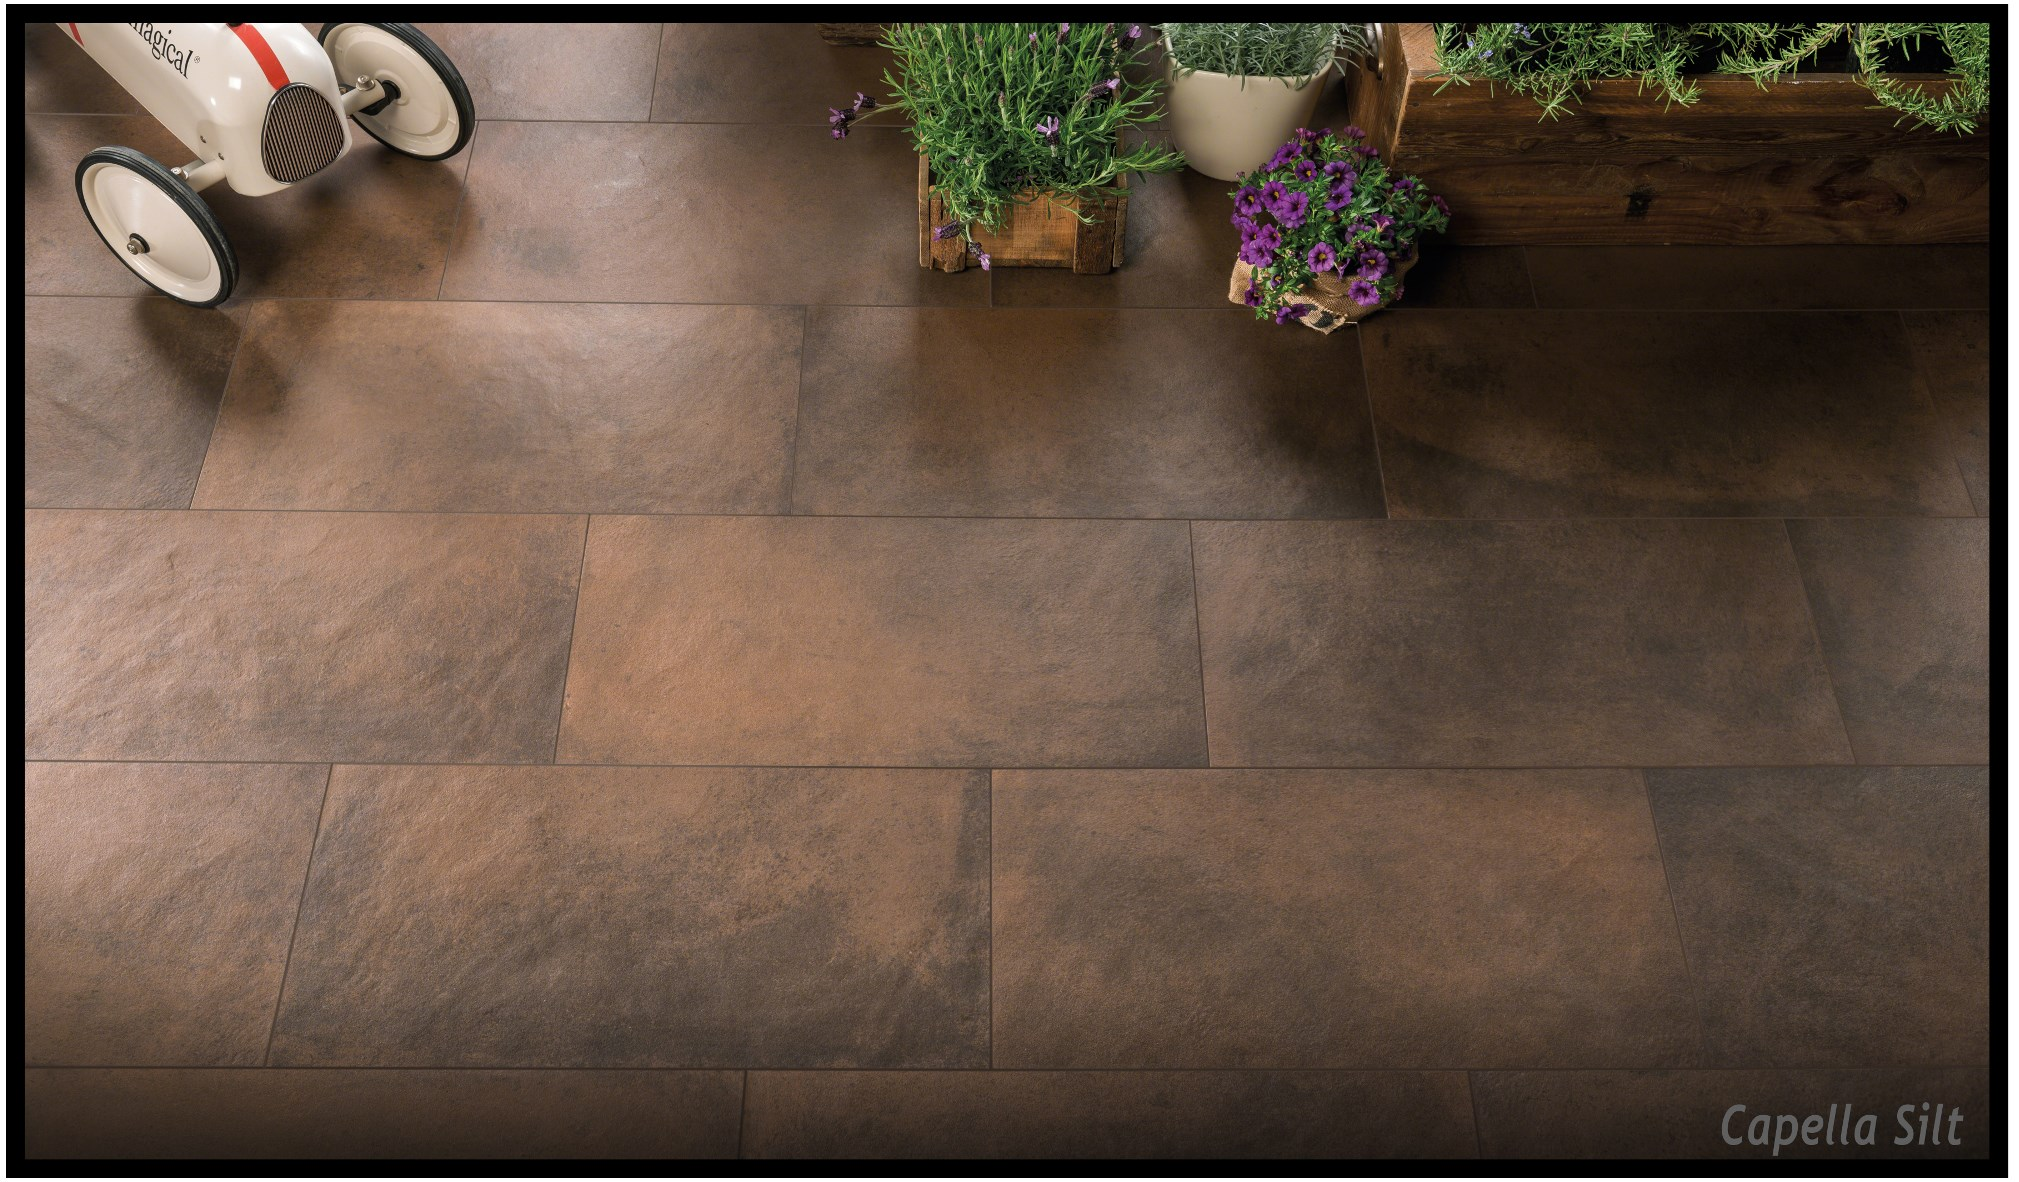 Improving Upon Perfection: Capella Porcelain Tiles